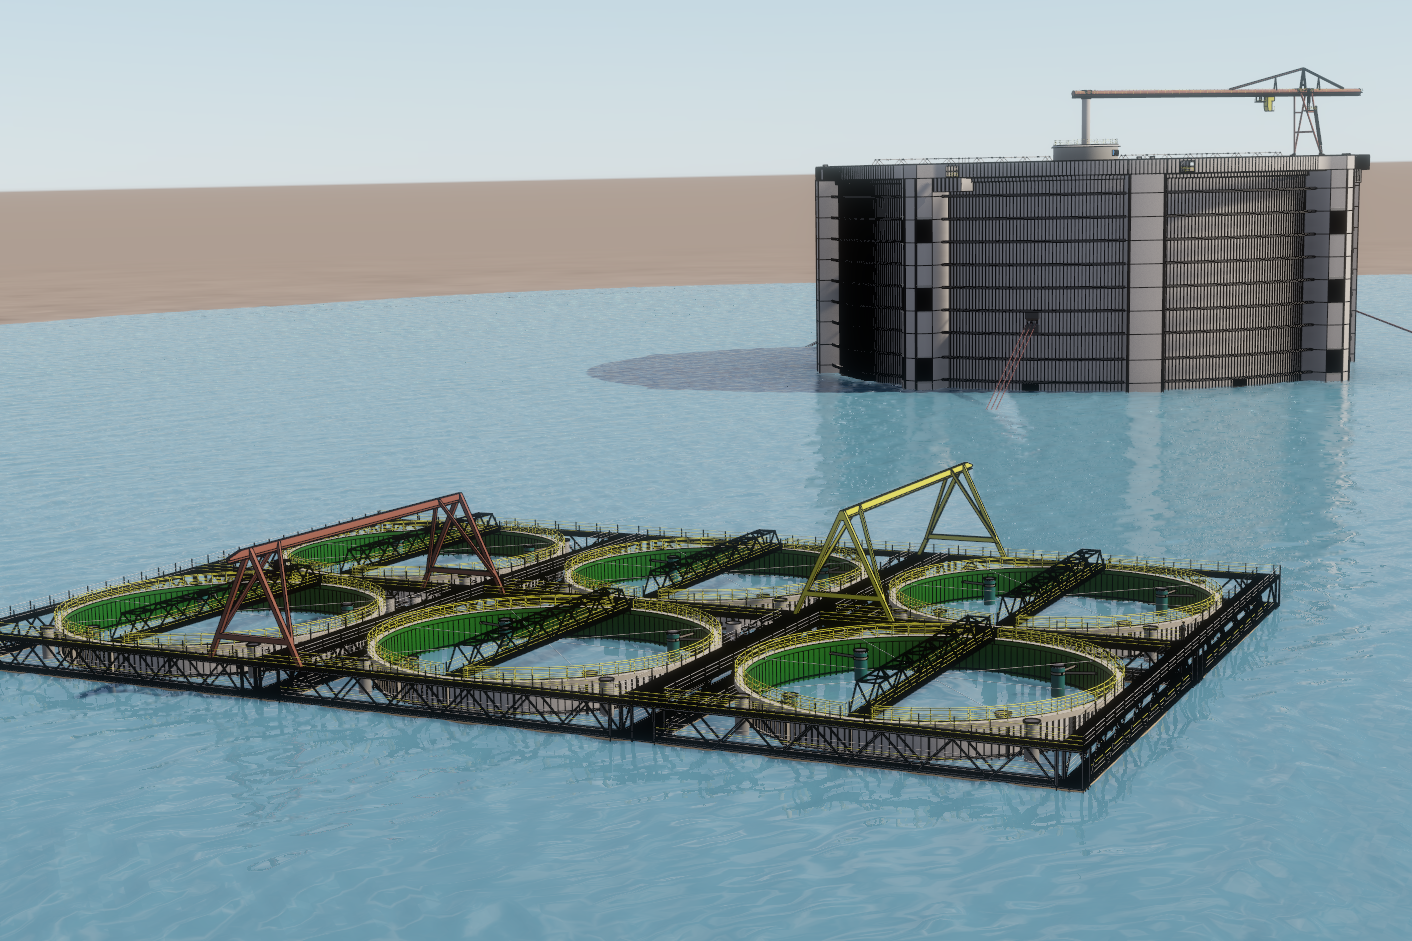 Seabased closed containment systems